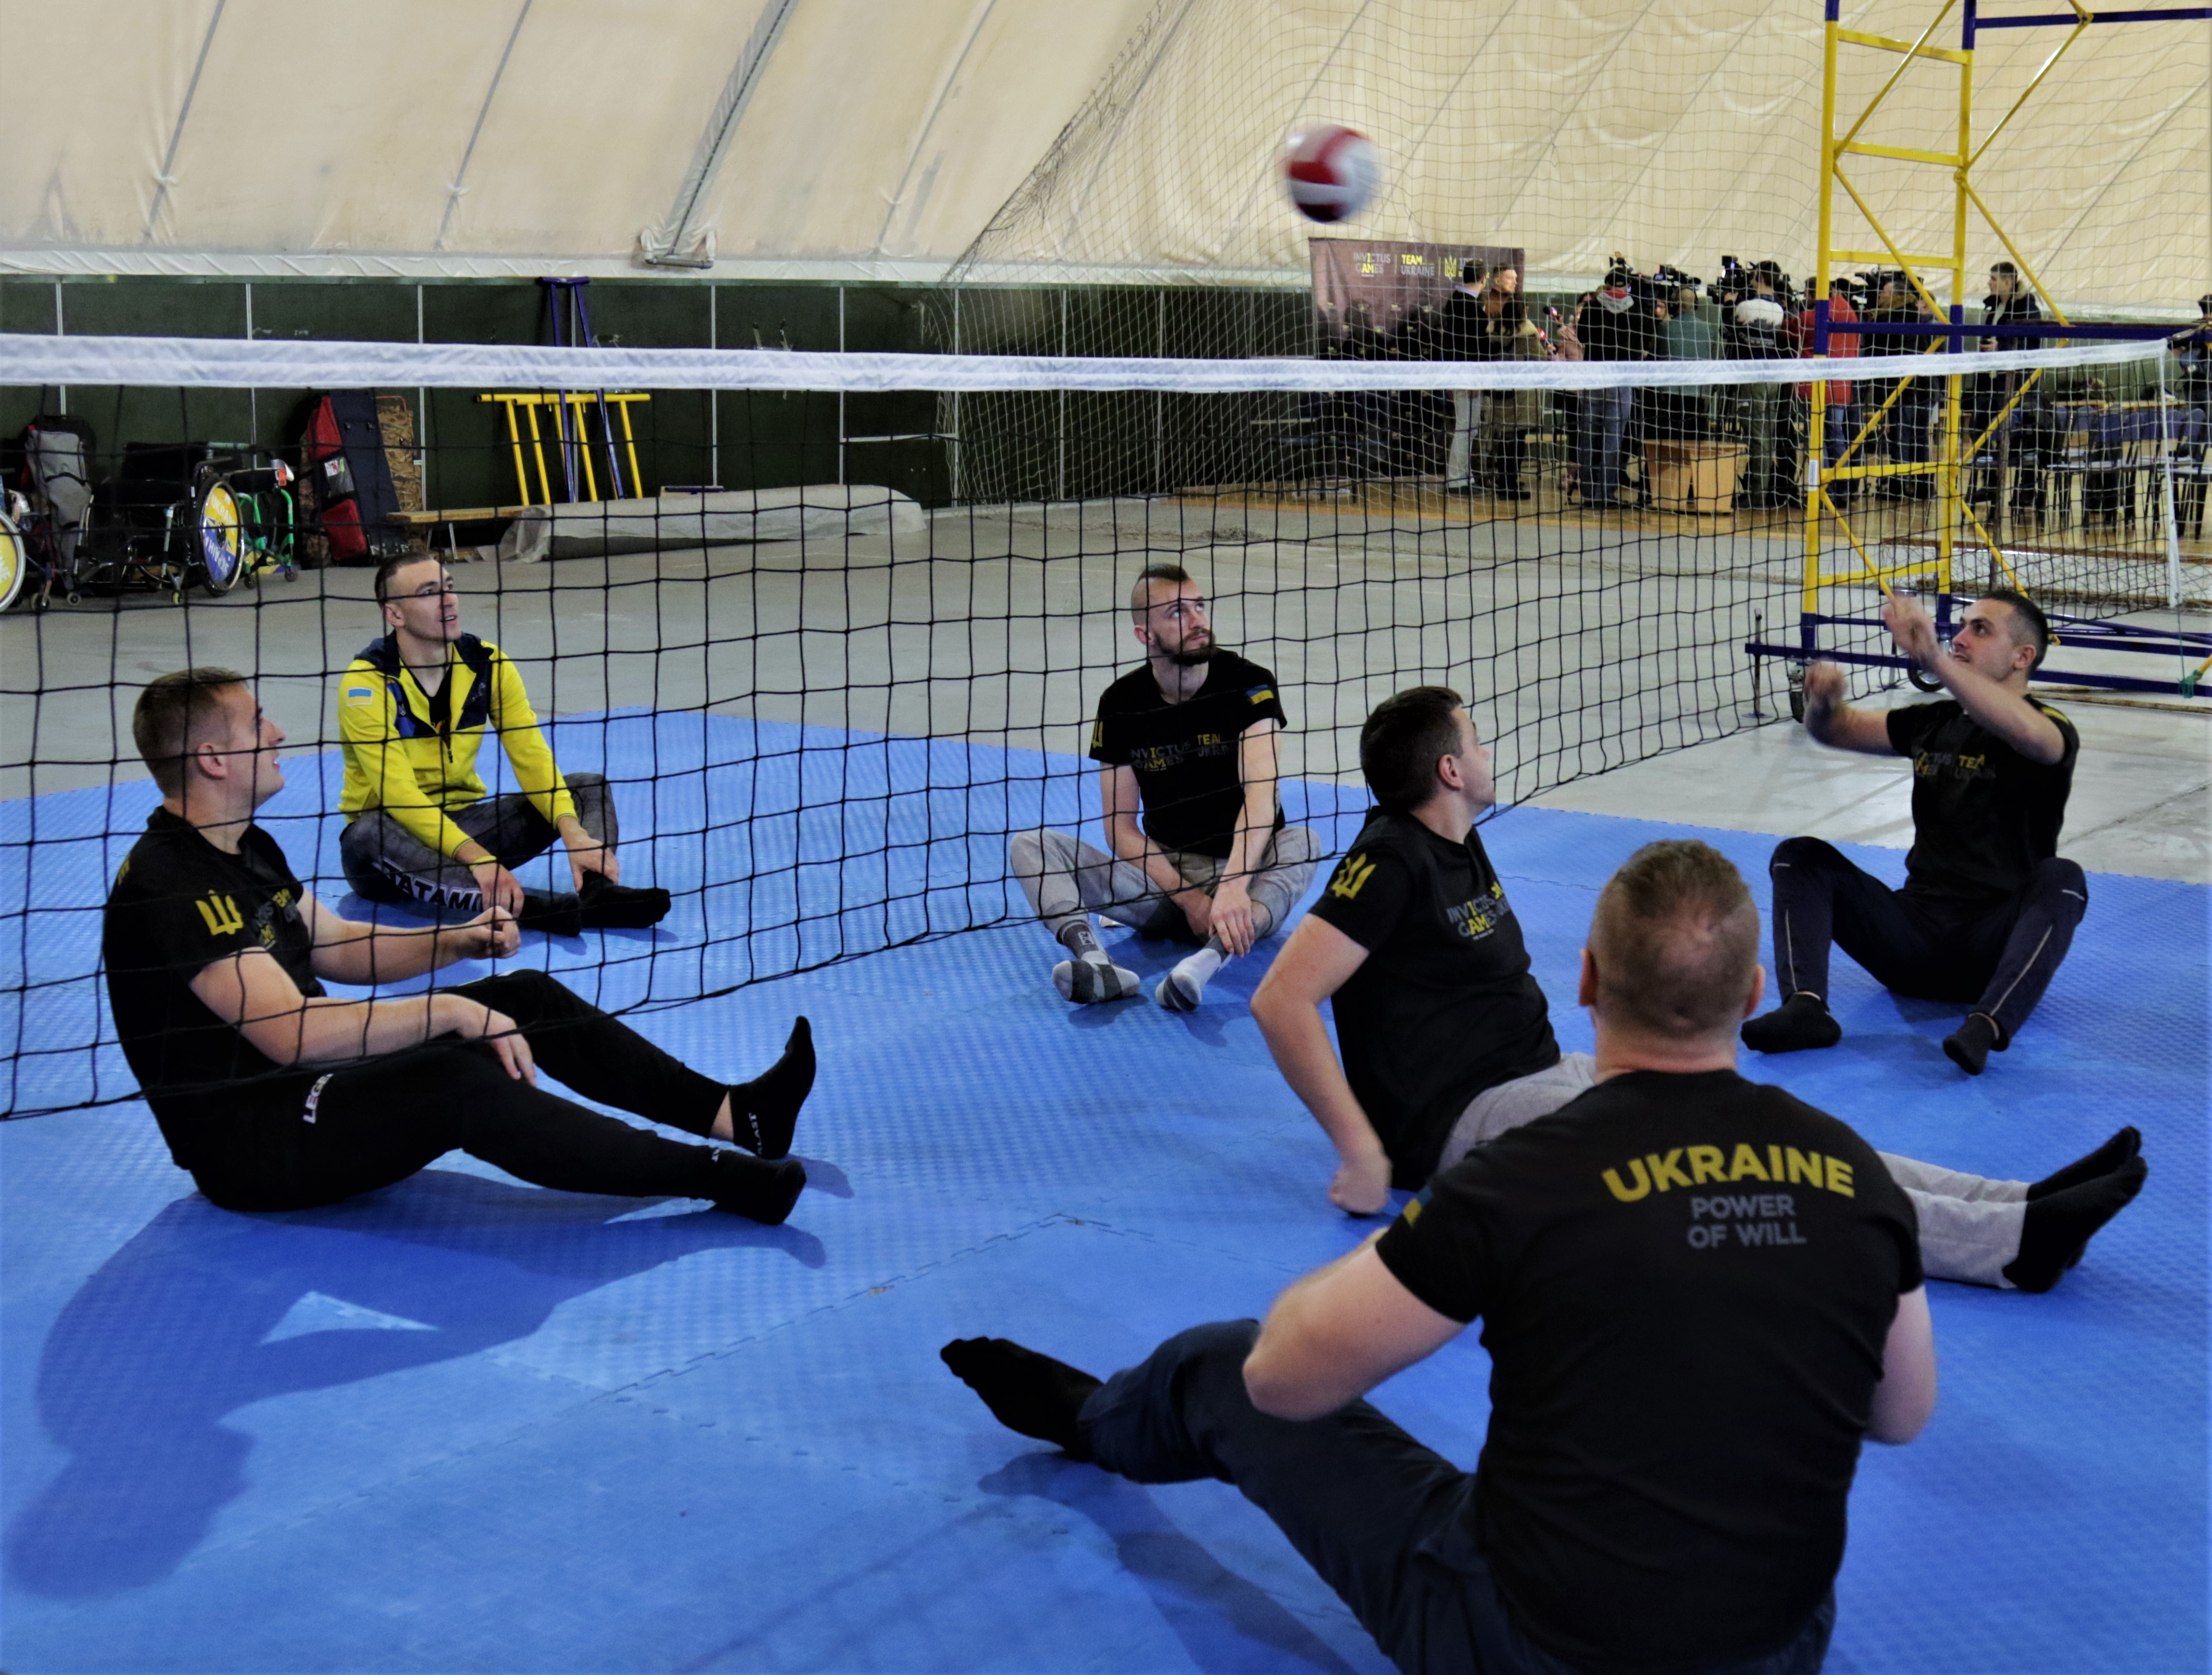 Invictus Unite - US AF Wounded Warrior program jointly with Invictus Games Team Ukraine held a seminar on adaptive sports for Ukrainian WIS community